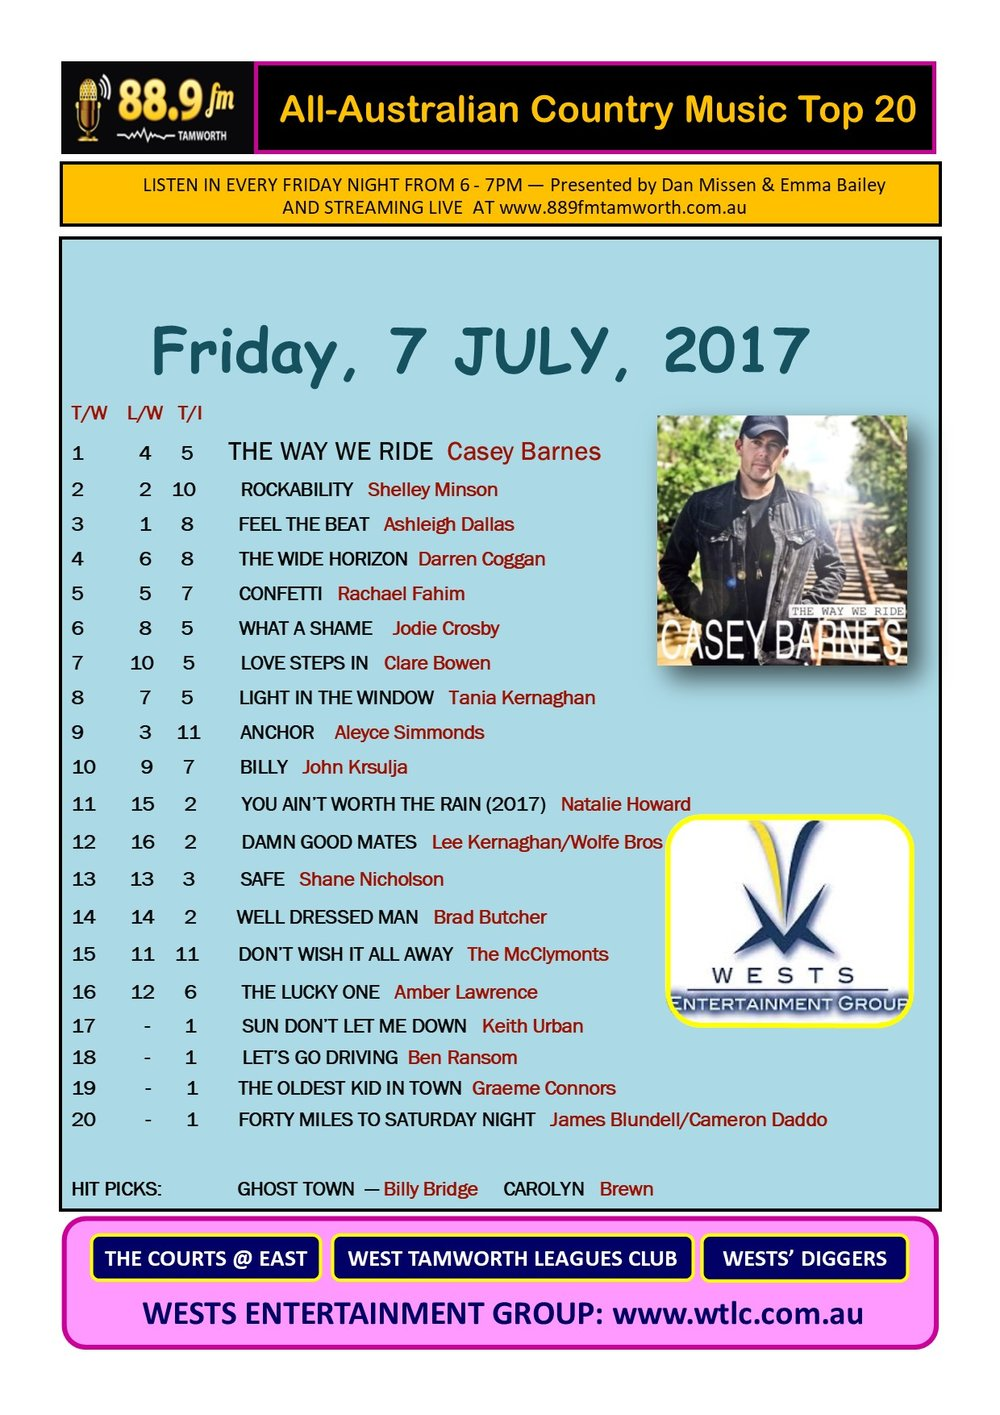 Country Music Top 20 June 30